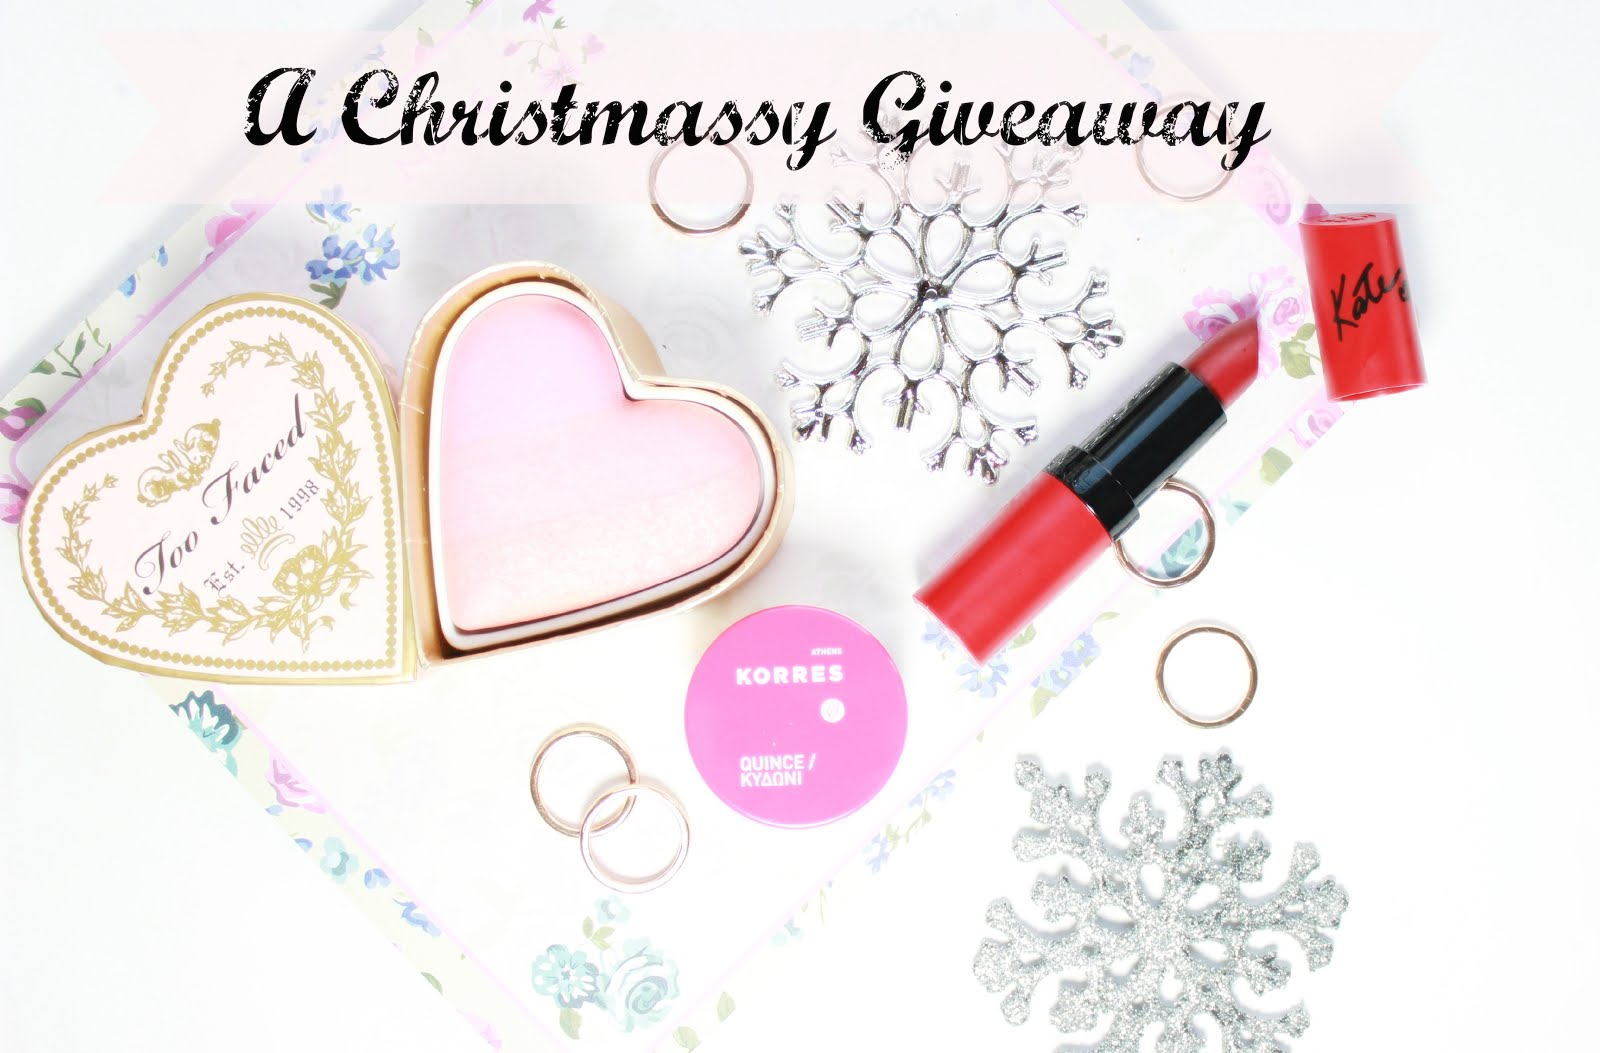 Enter My Christmas Giveaway!